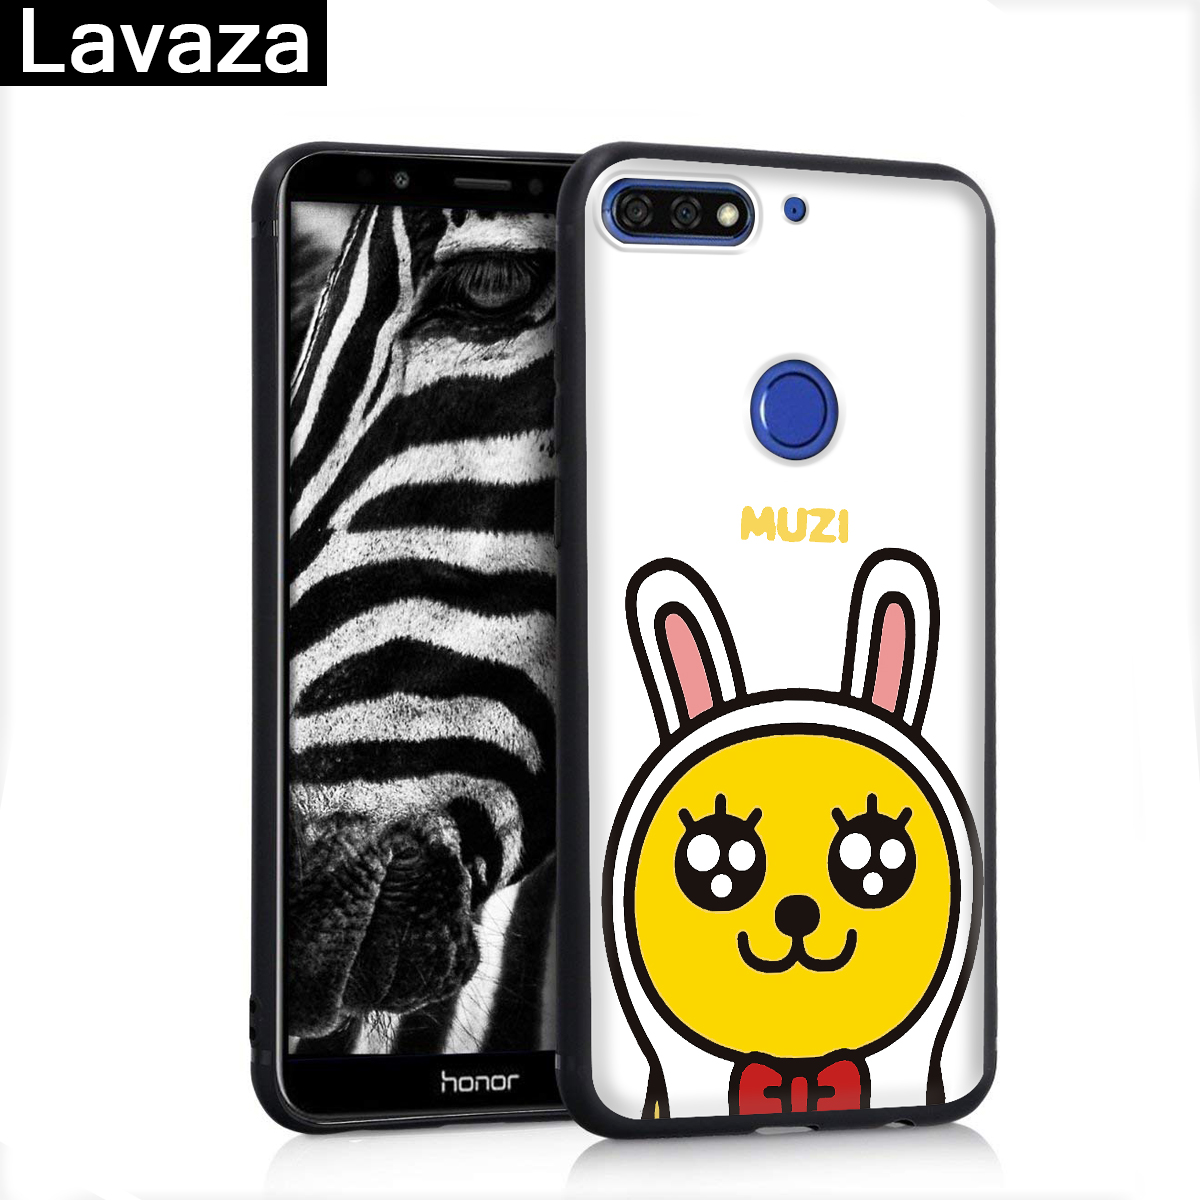 Lavaza POP Korea Cartoon Anime Silicone Case for Huawei P8 Lite 2015 2017 P9 2016 Mini P10 P20 Pro P Smart 2019 P30 in Fitted Cases from Cellphones Telecommunications